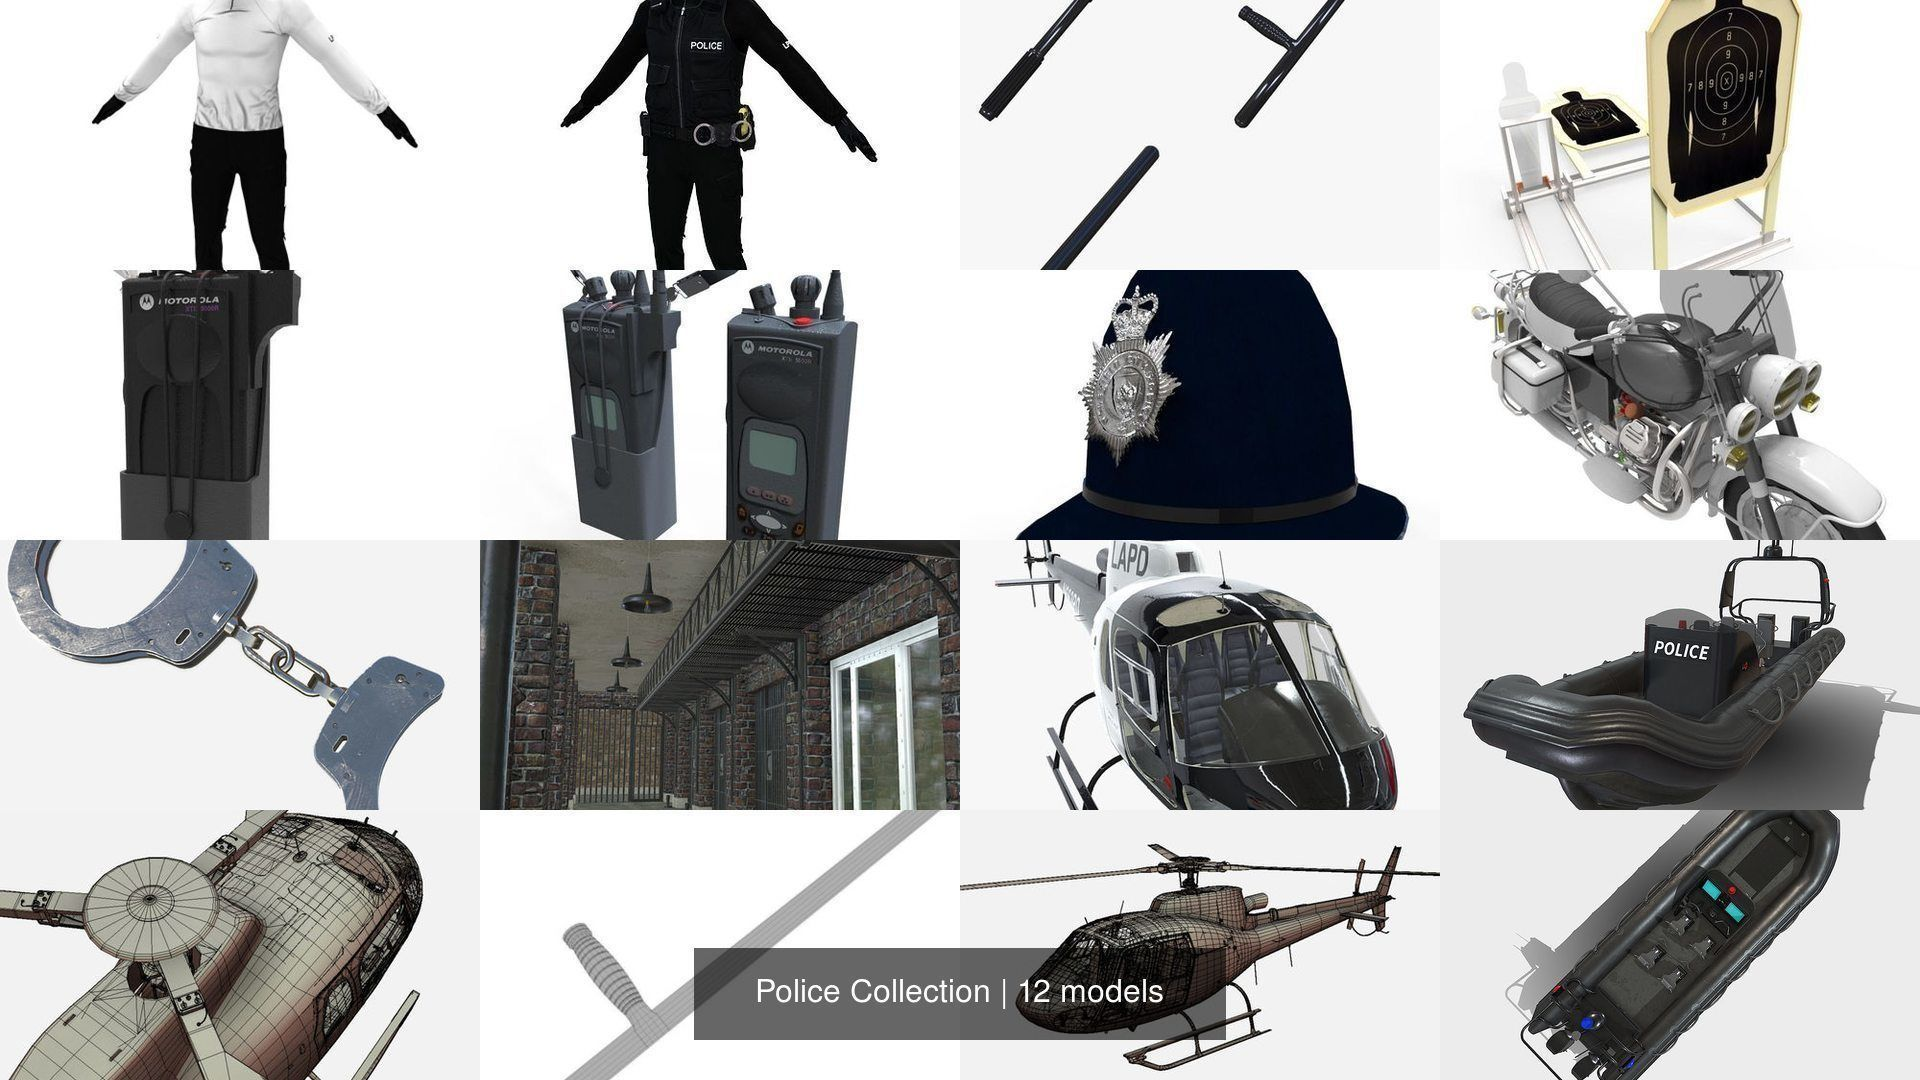 Police Collection